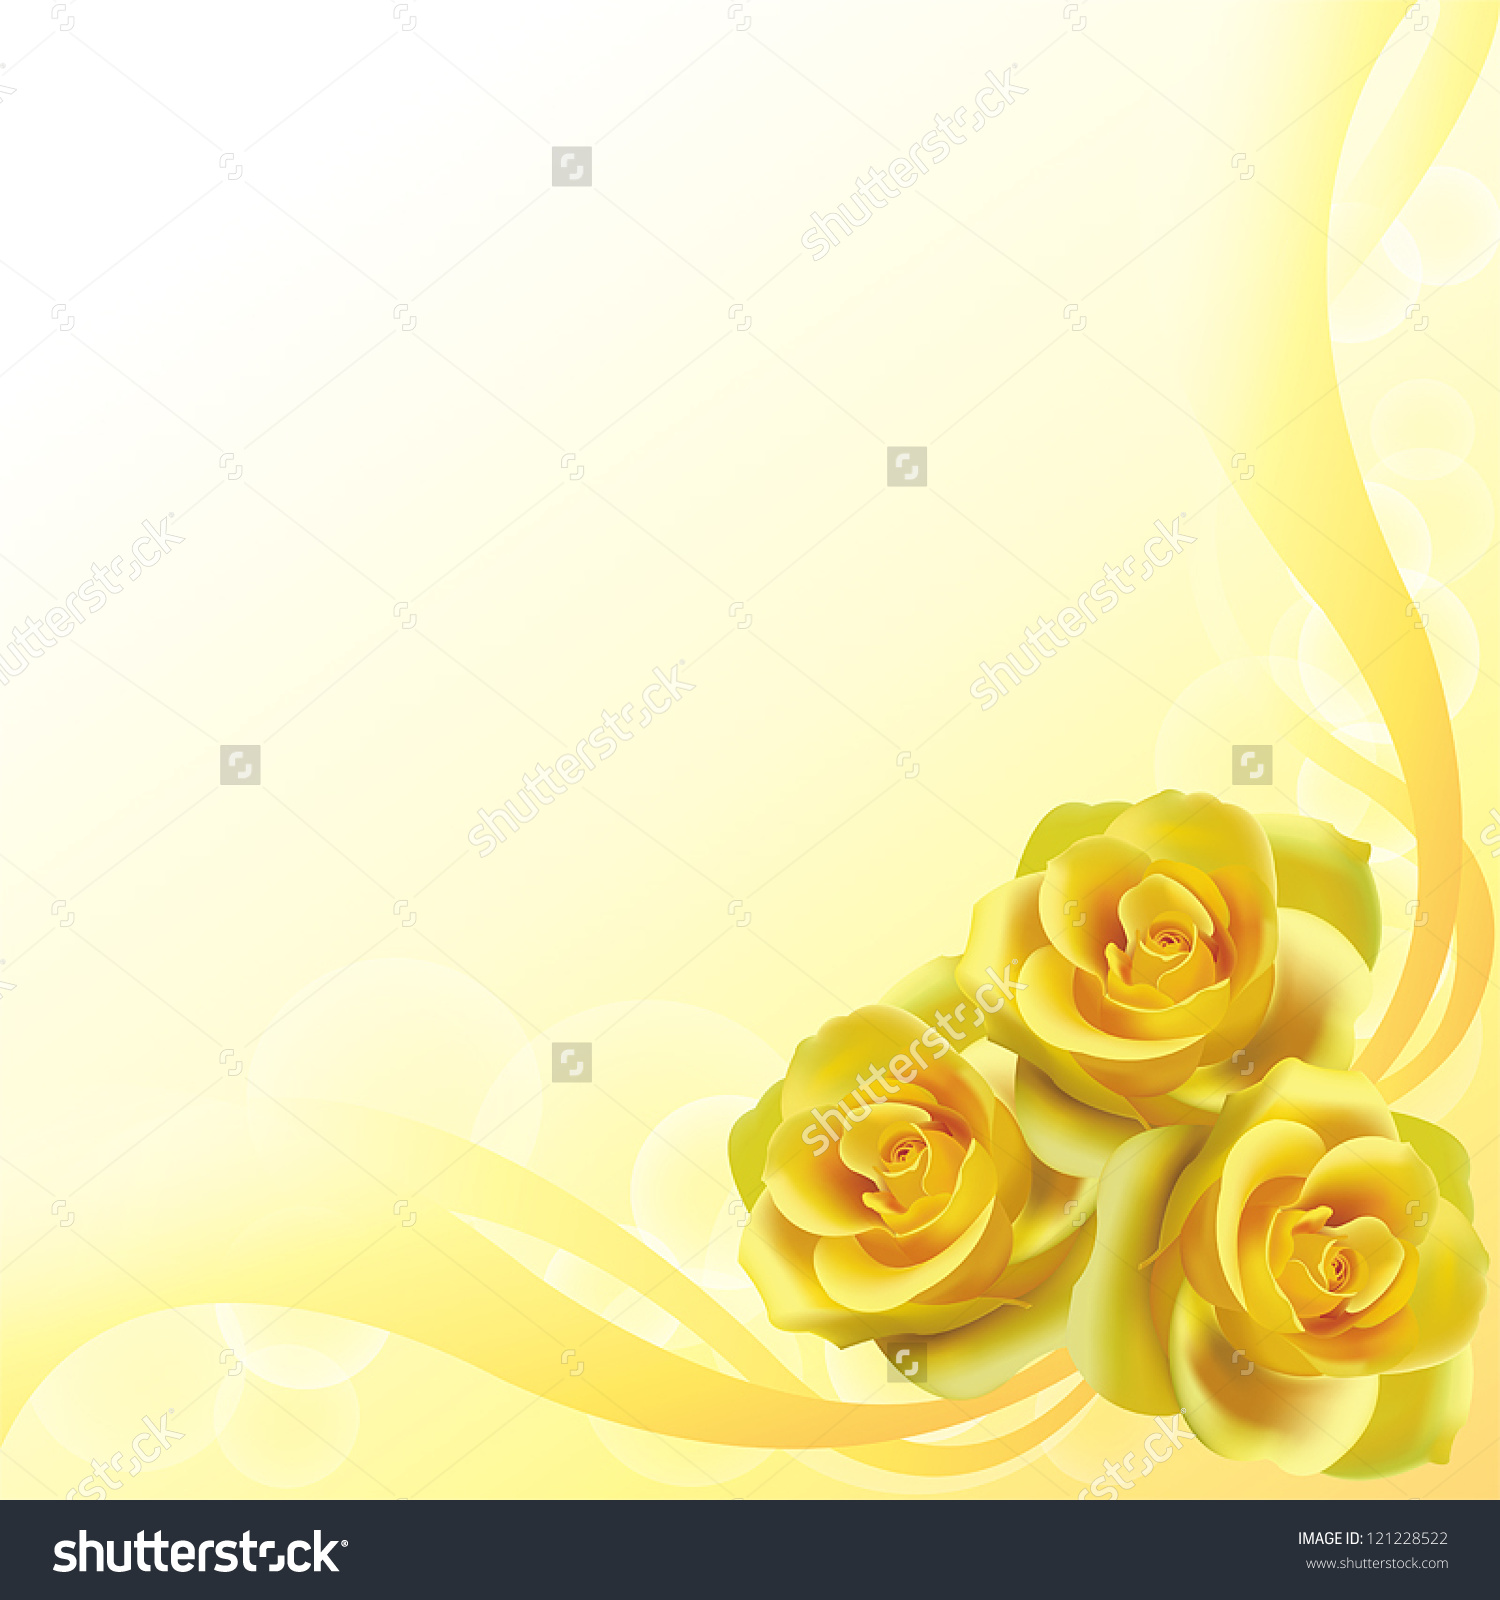 Yellow Rose clipart wedding Rose yellow clip art Download